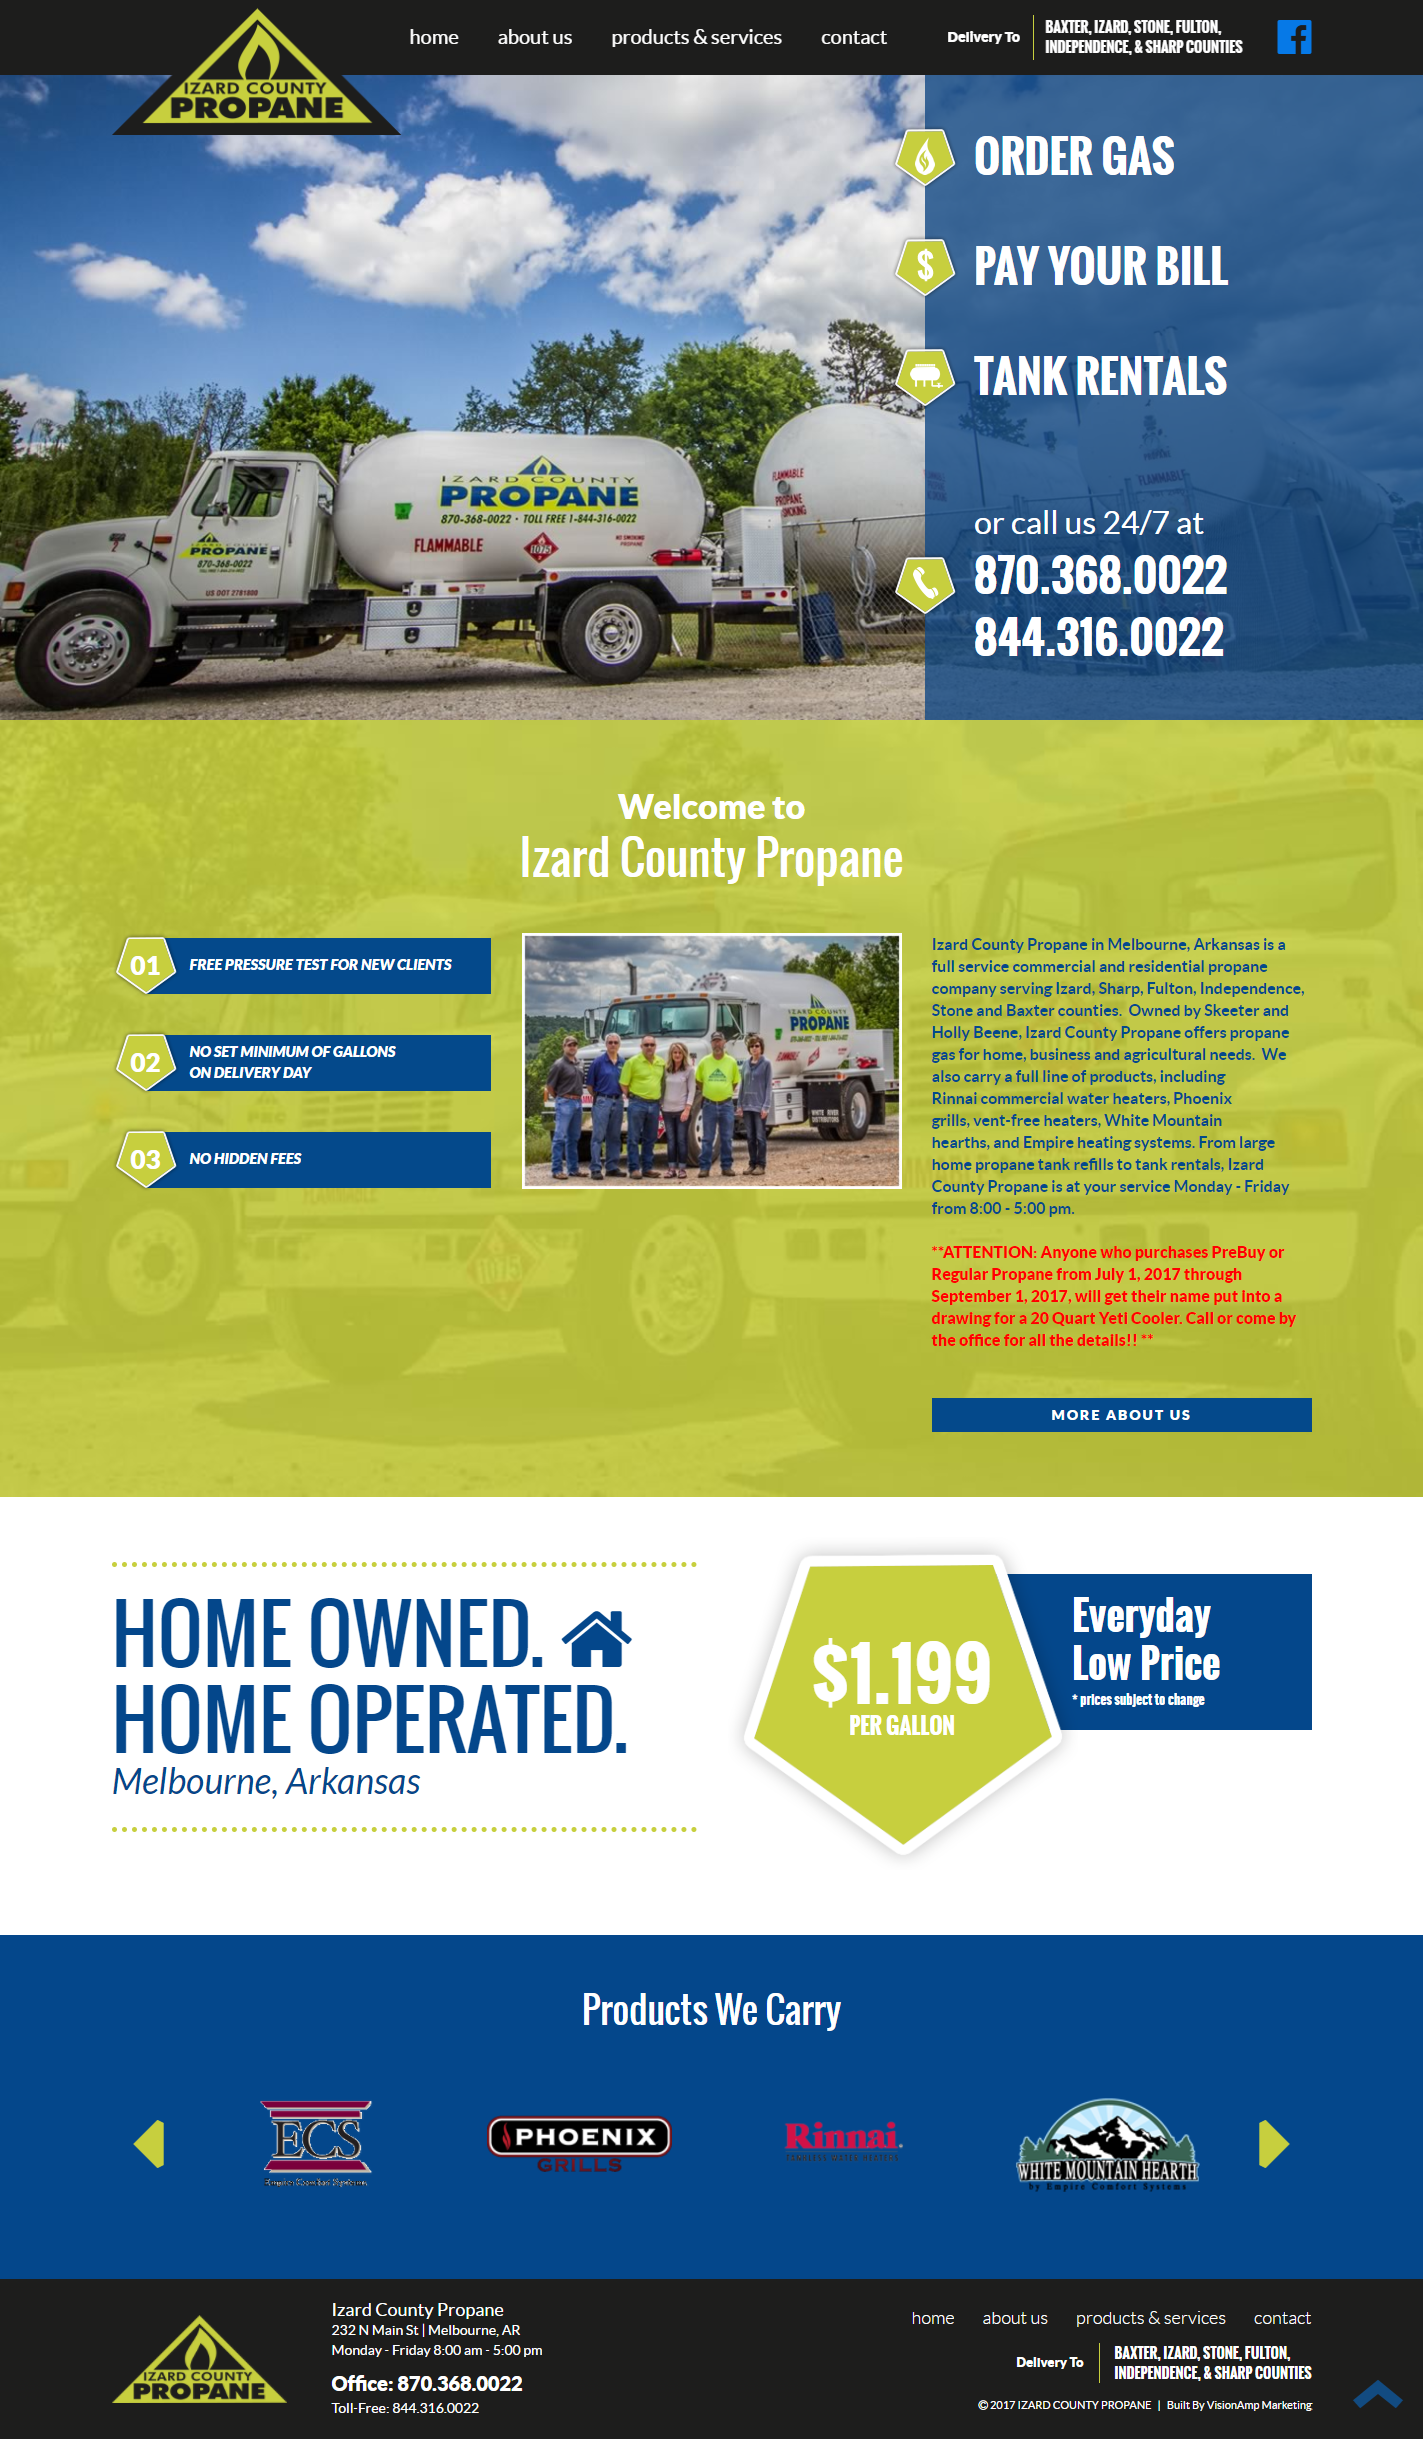 Izard County Propane Full Web Design Image